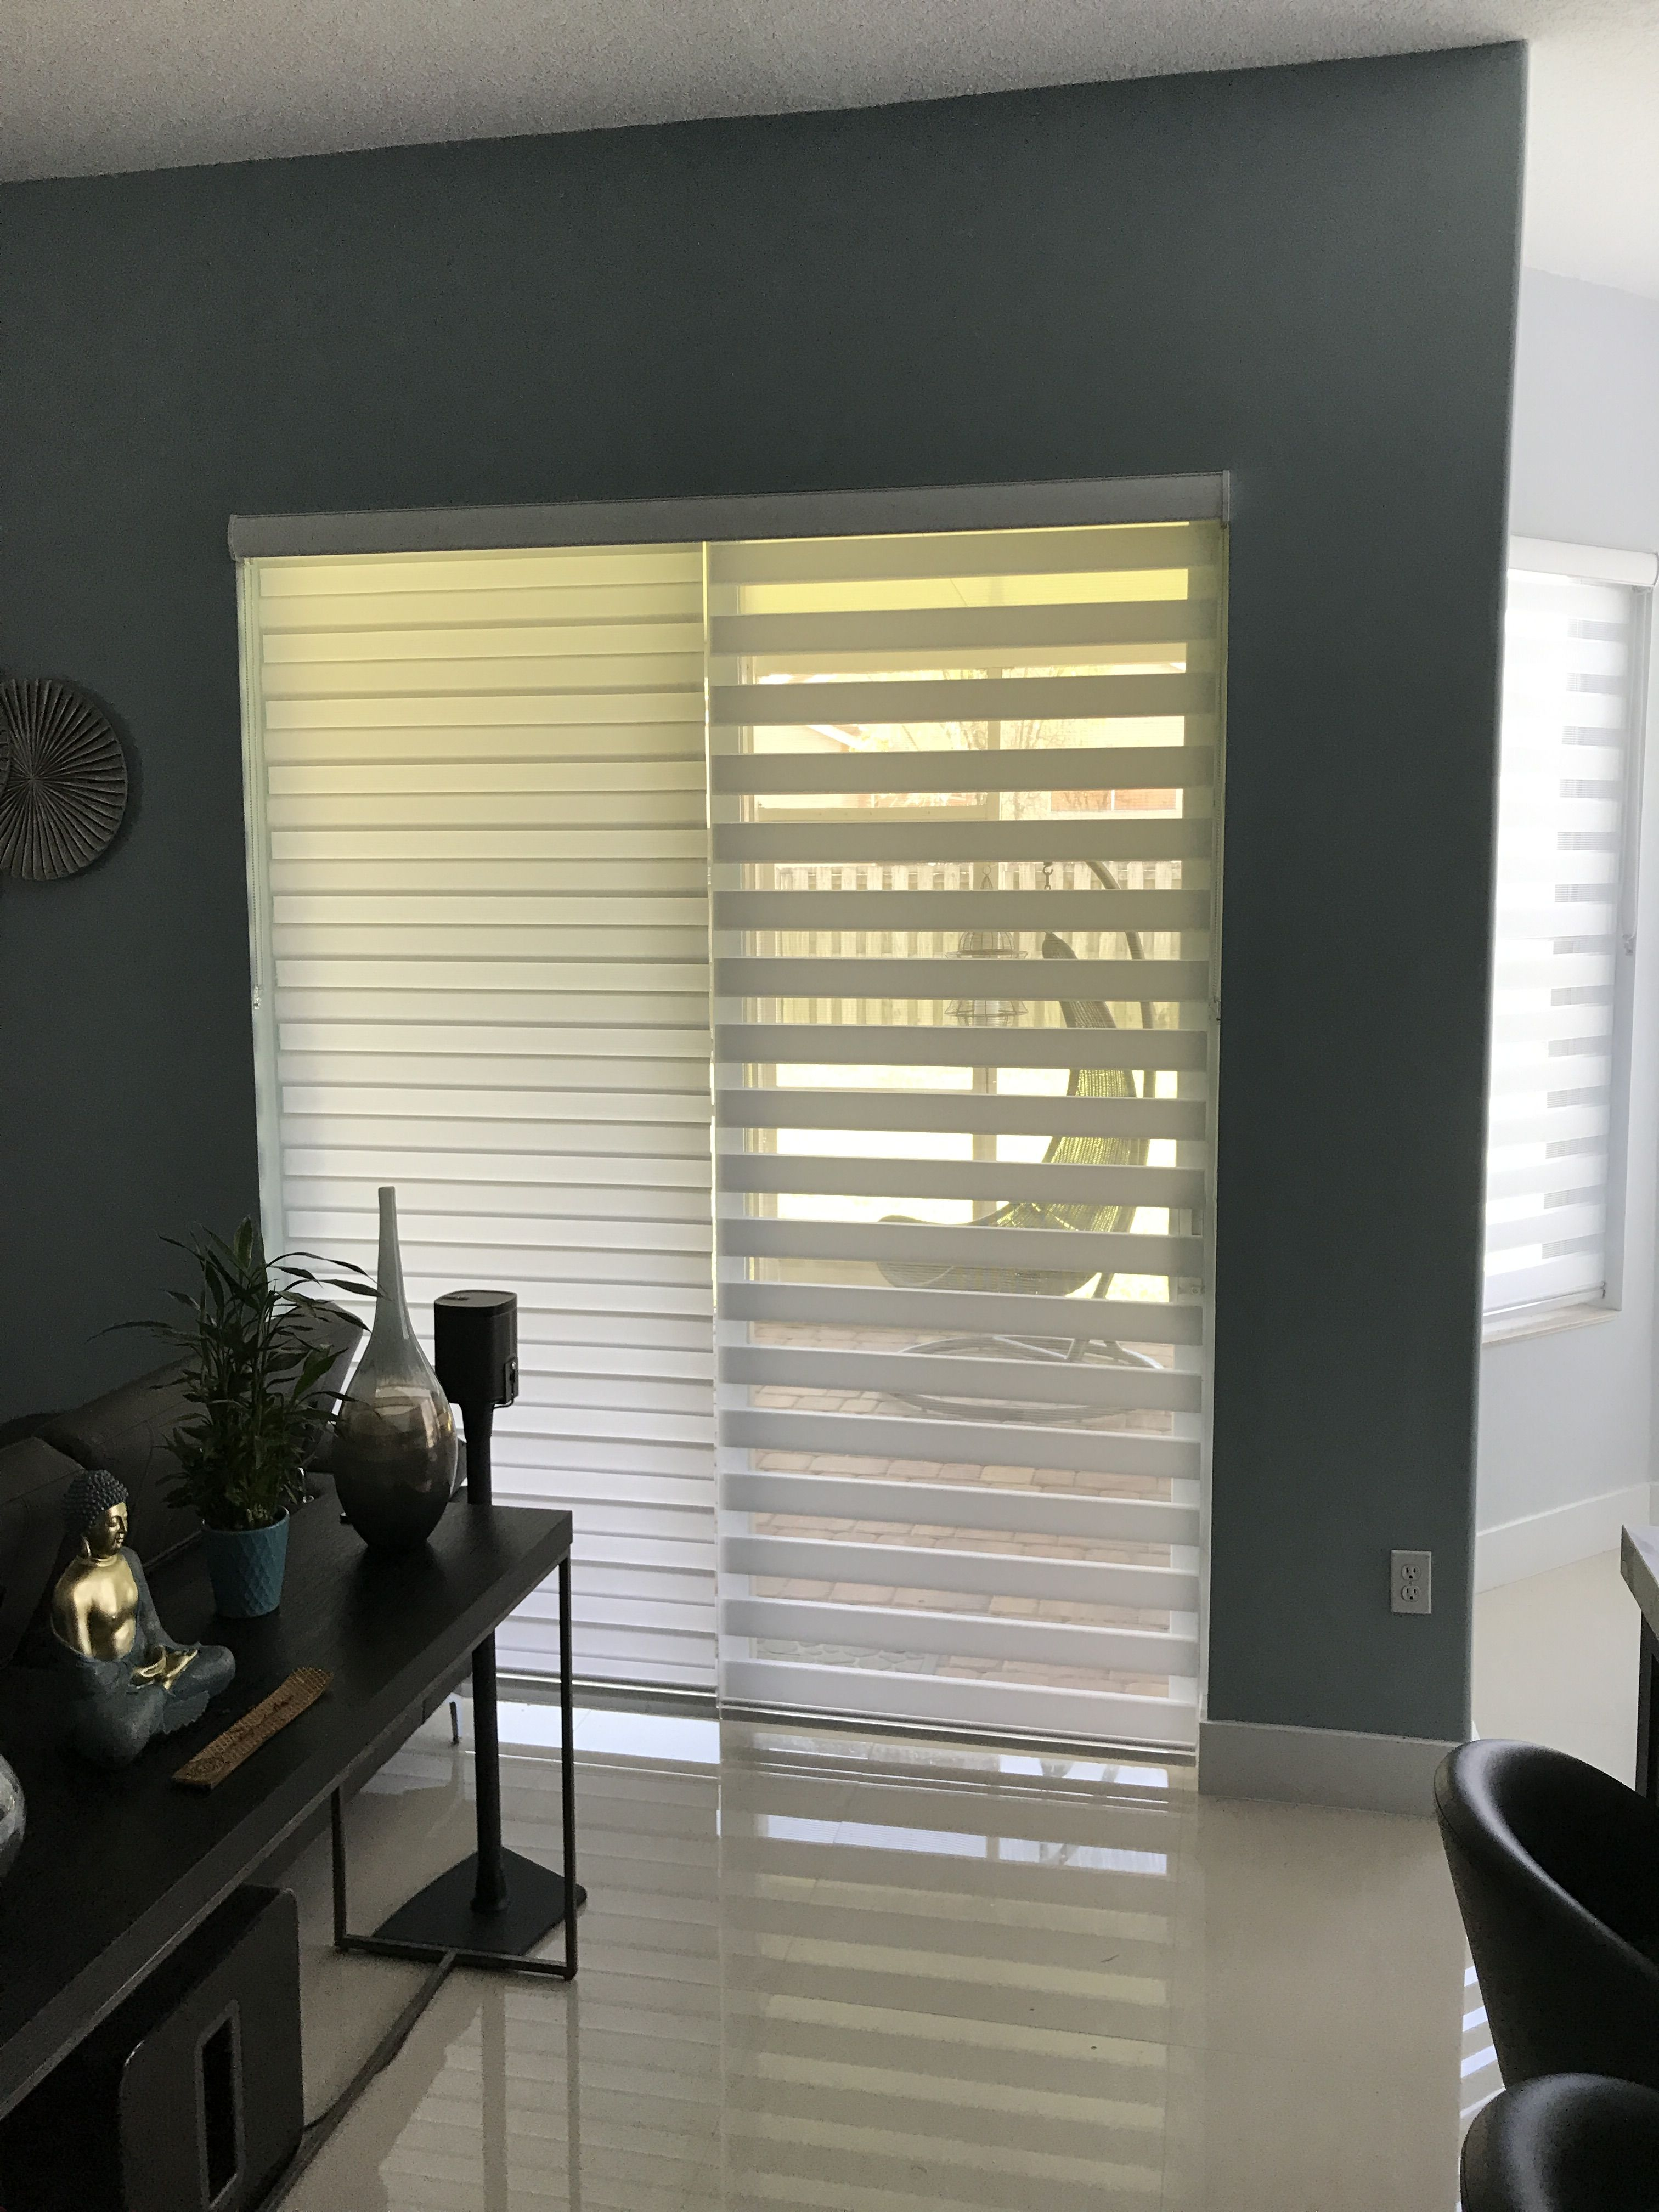 2in1 Zebra Illusion Shades By Elite Decor Miami Zebra Blinds